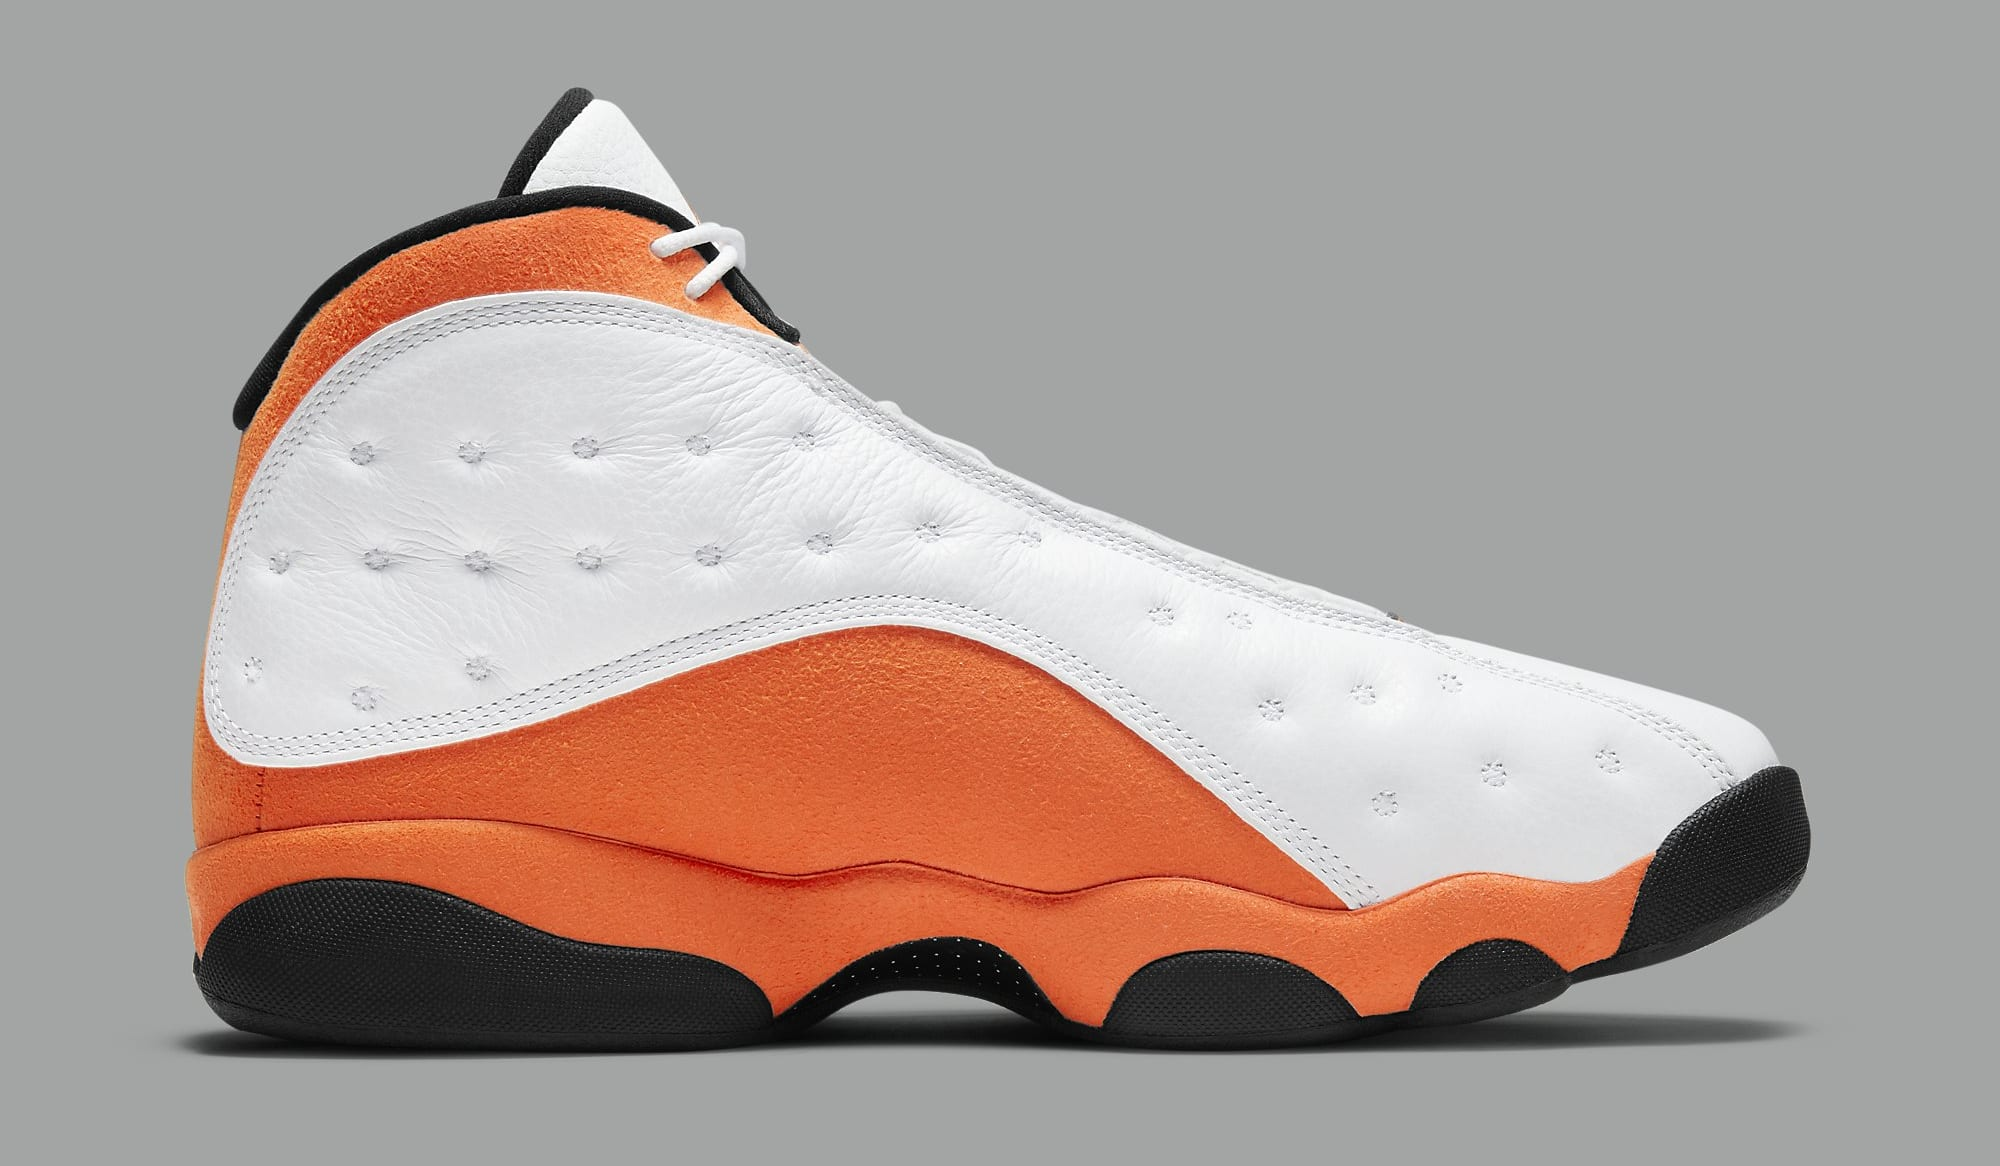 Air Jordan 13 Retro 'Starfish' 414571-108 Medial